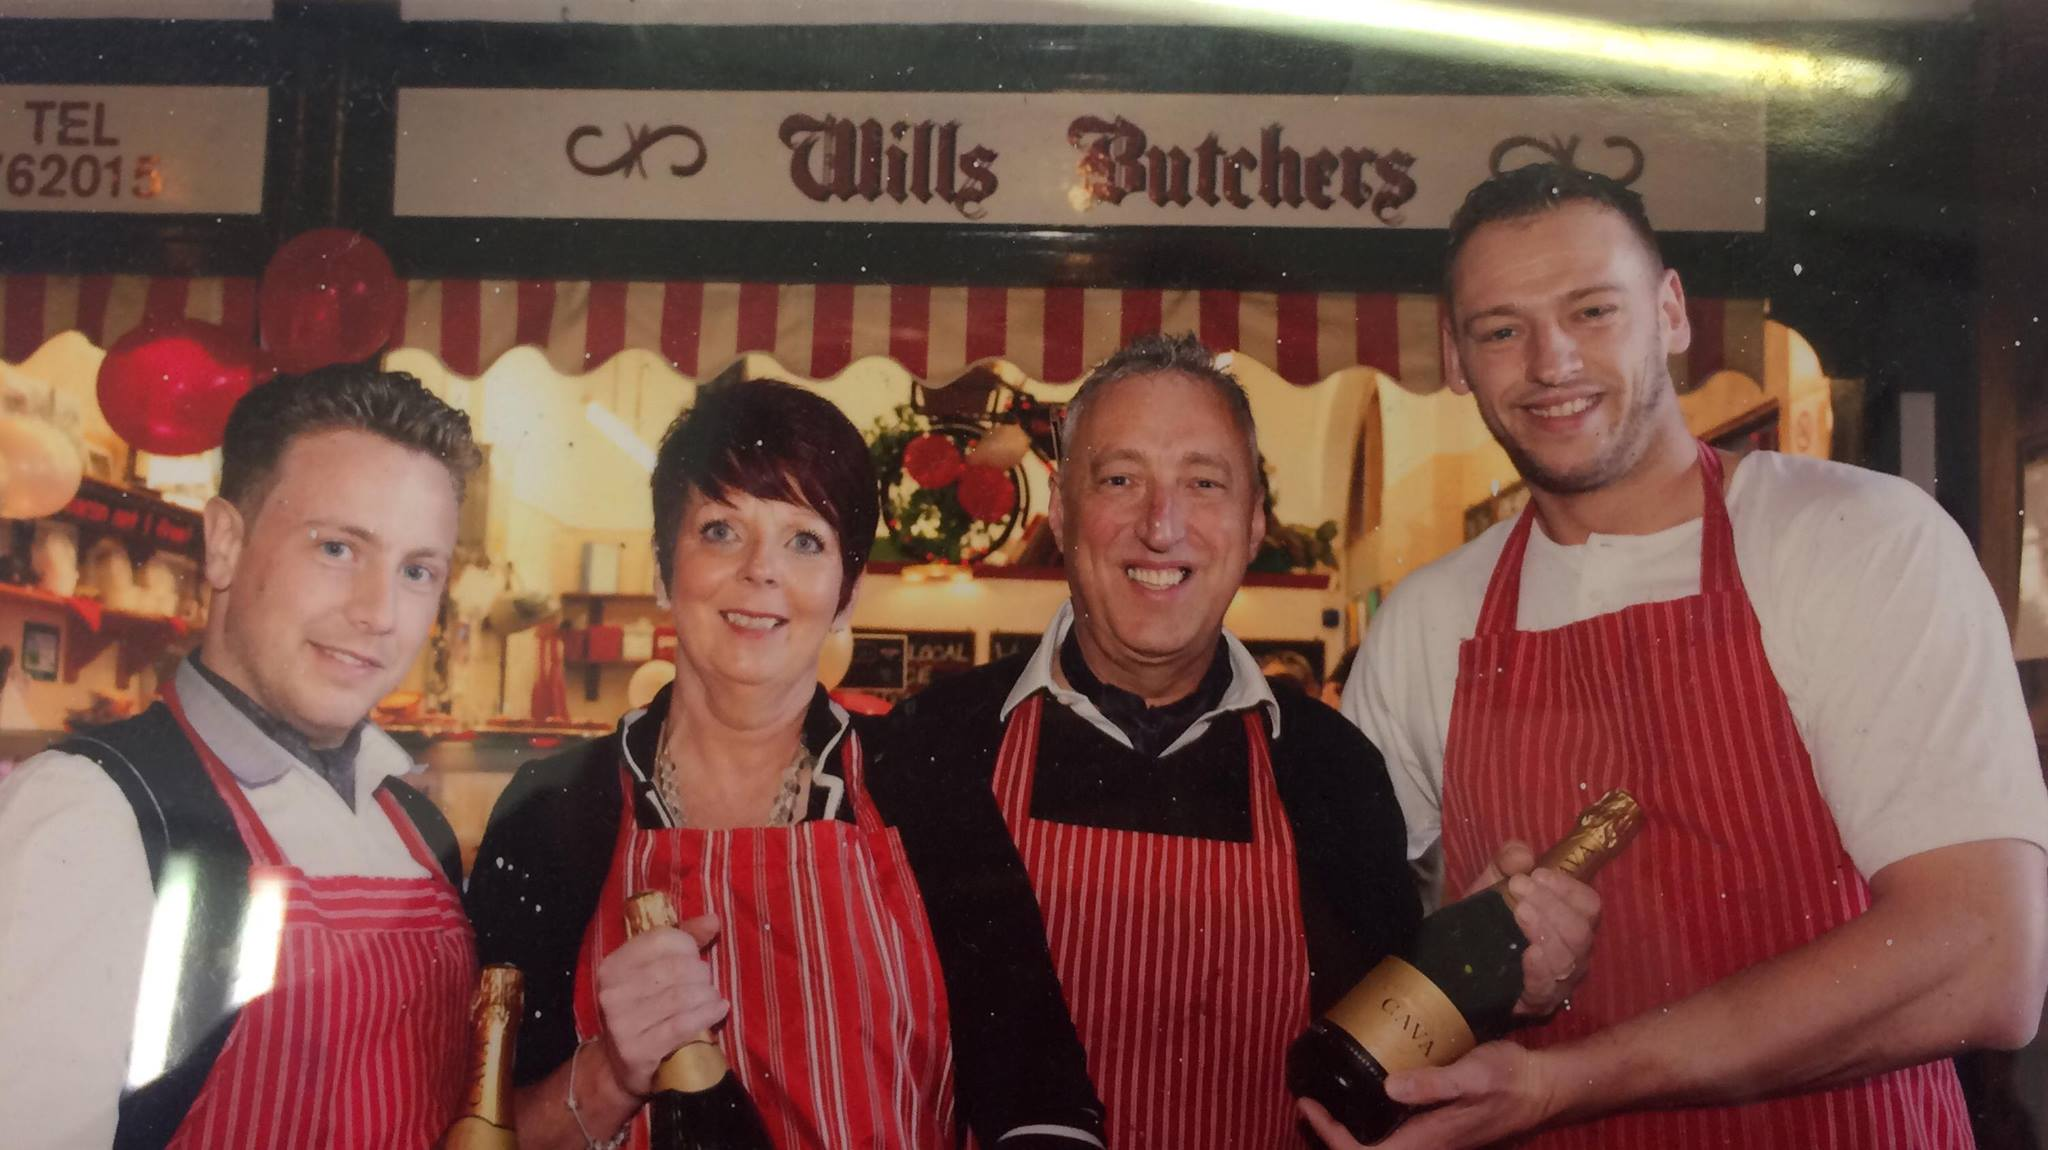 Will's Butchers - Location: Indoor Market Shop UnitTrading: Monday - SaturdayContact: via our Facebook page or 01270 762015We're also on Twitter